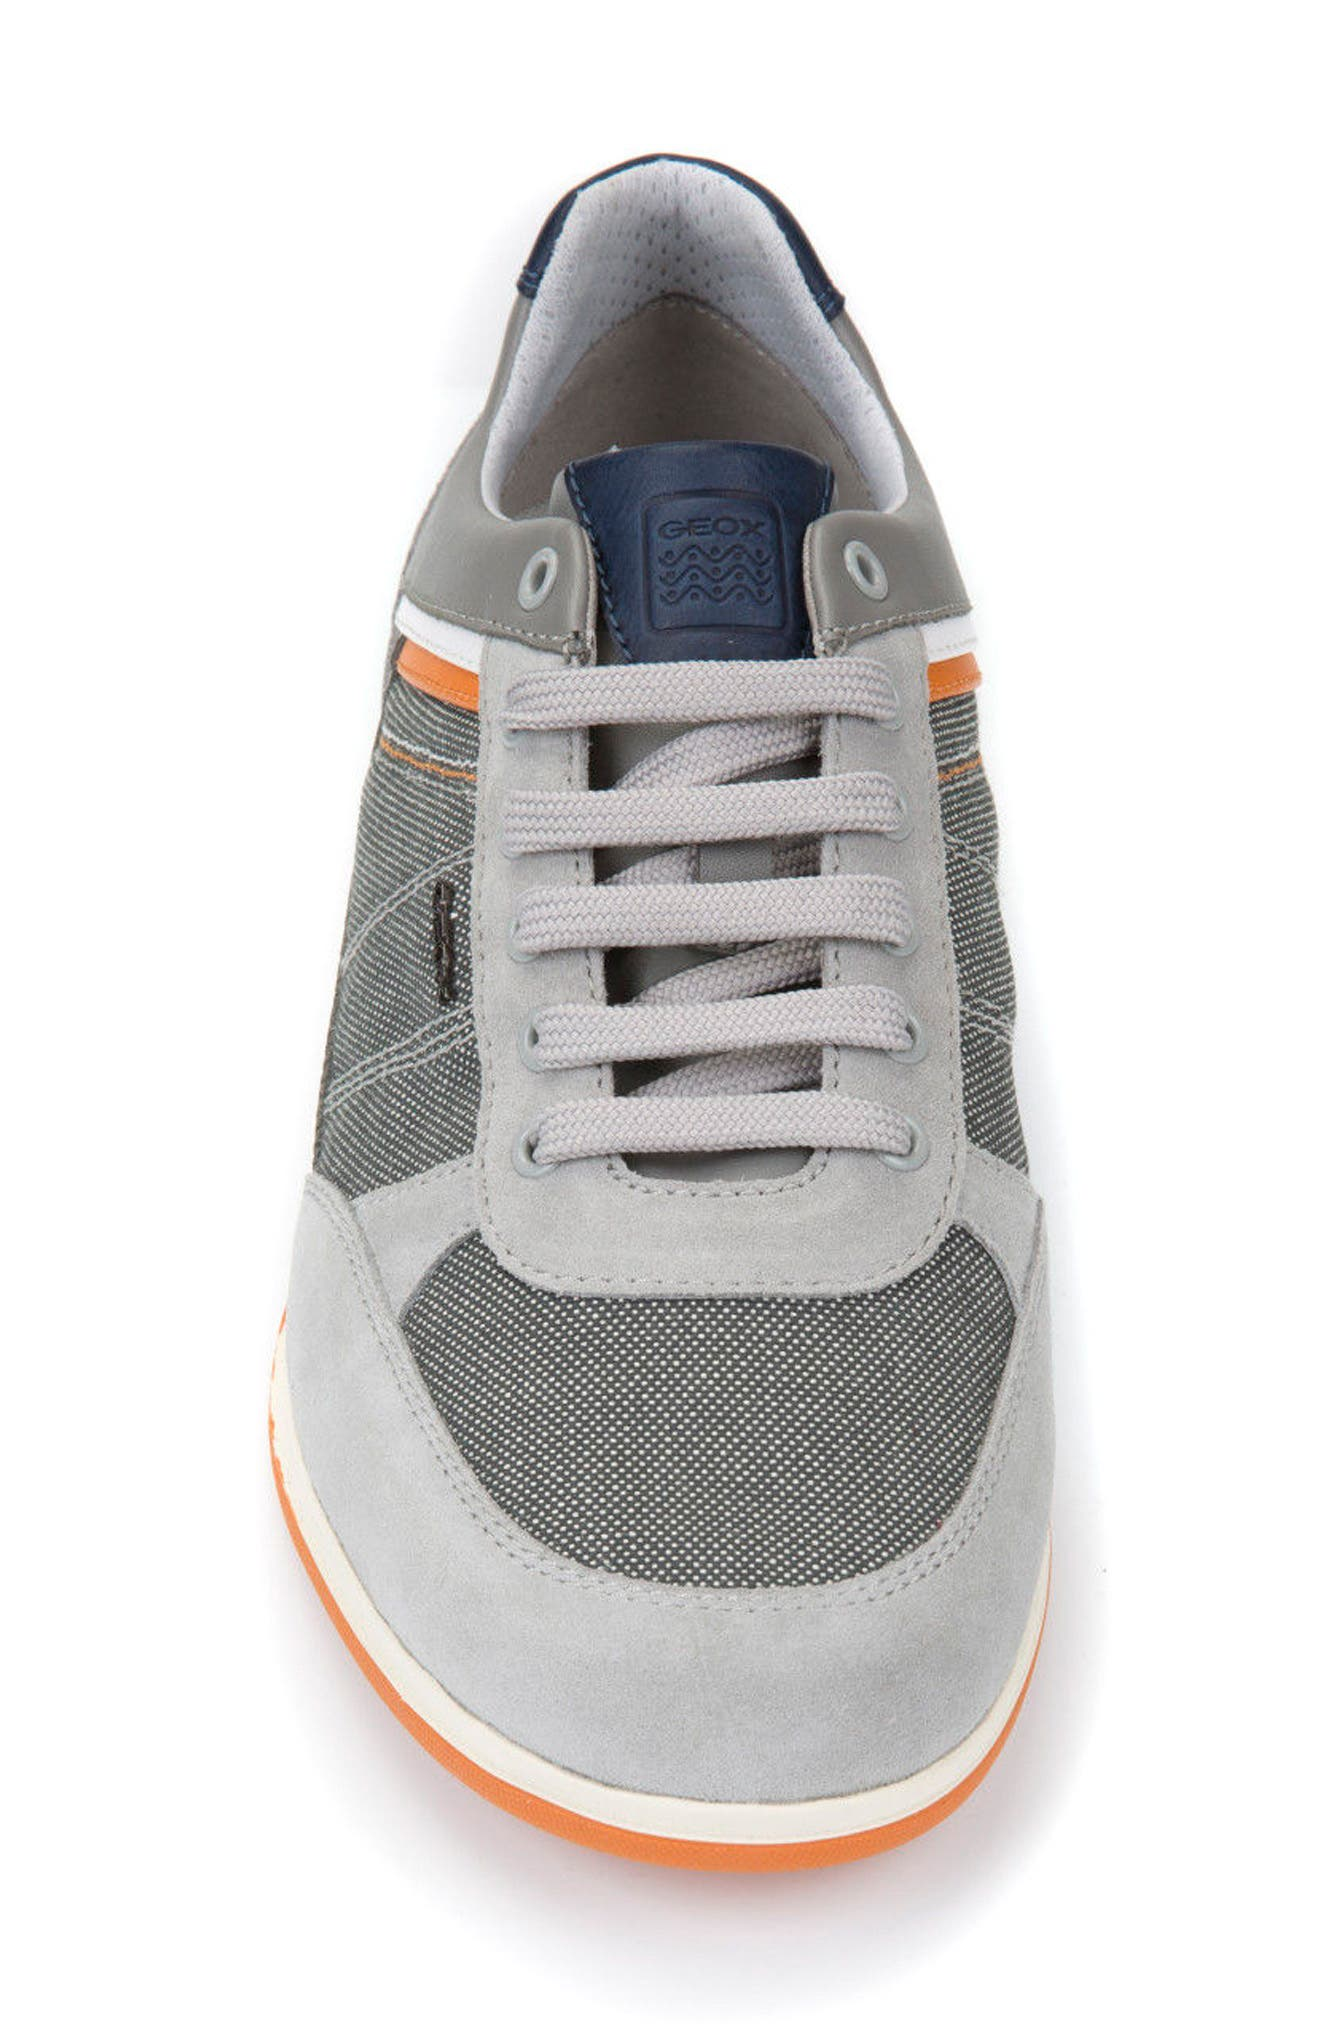 Renan 1 Low Top Sneaker,                             Alternate thumbnail 4, color,                             Light Grey/ Stone